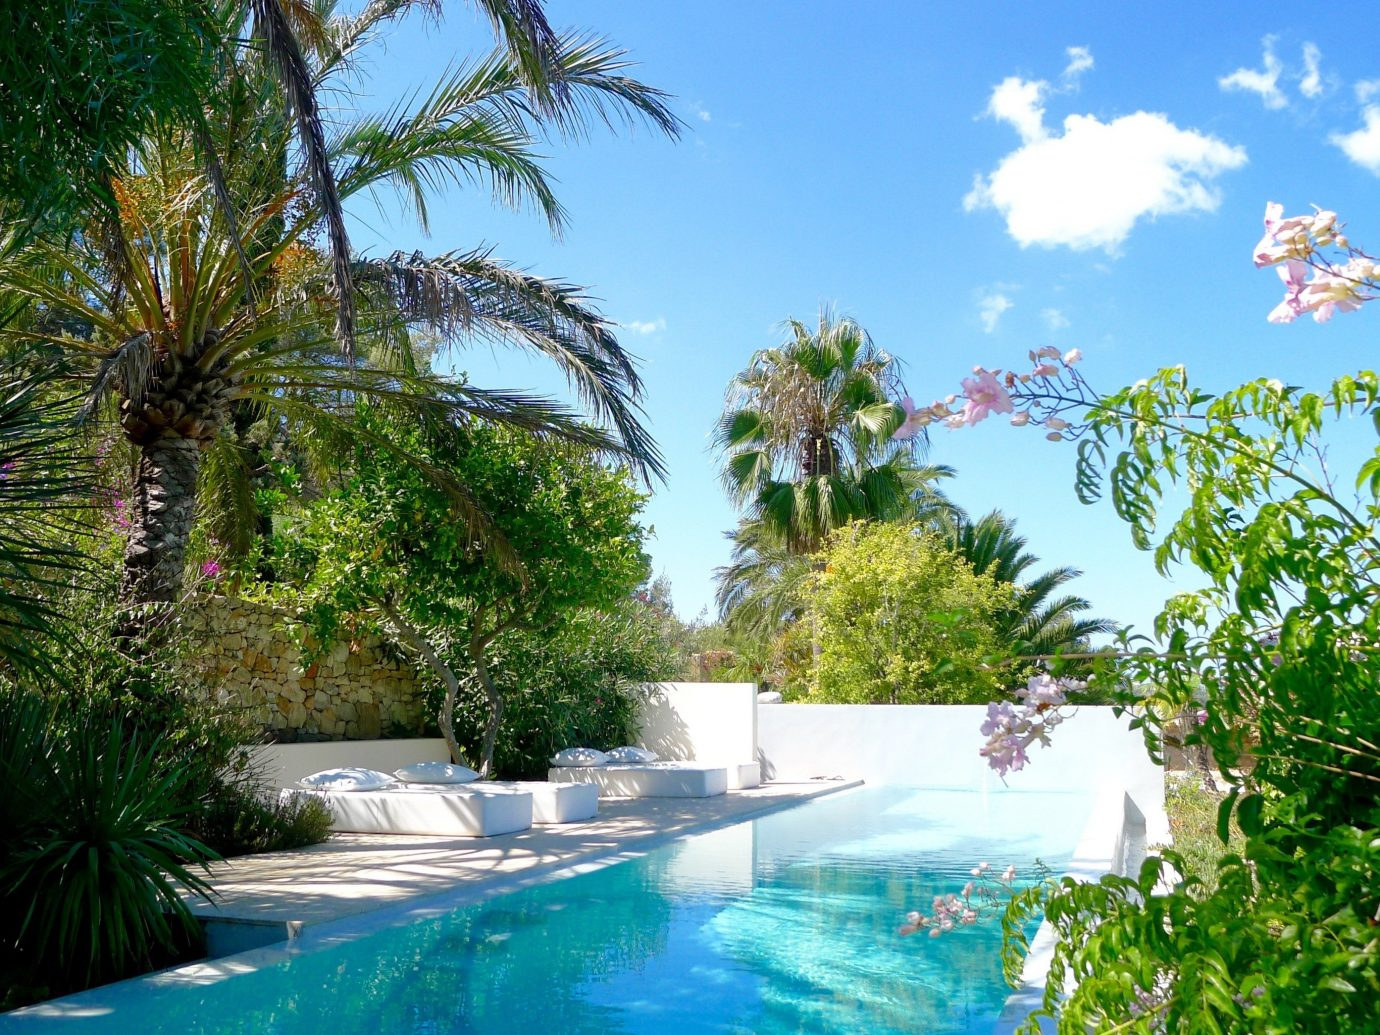 Boutique Hotels Hotels Luxury Travel Meditation Retreats Spa Retreats Trip Ideas Yoga Retreats tree outdoor swimming pool property Resort arecales palm tree leisure water estate tropics real estate water feature caribbean vacation resort town Pool sky landscape plant landscaping surrounded